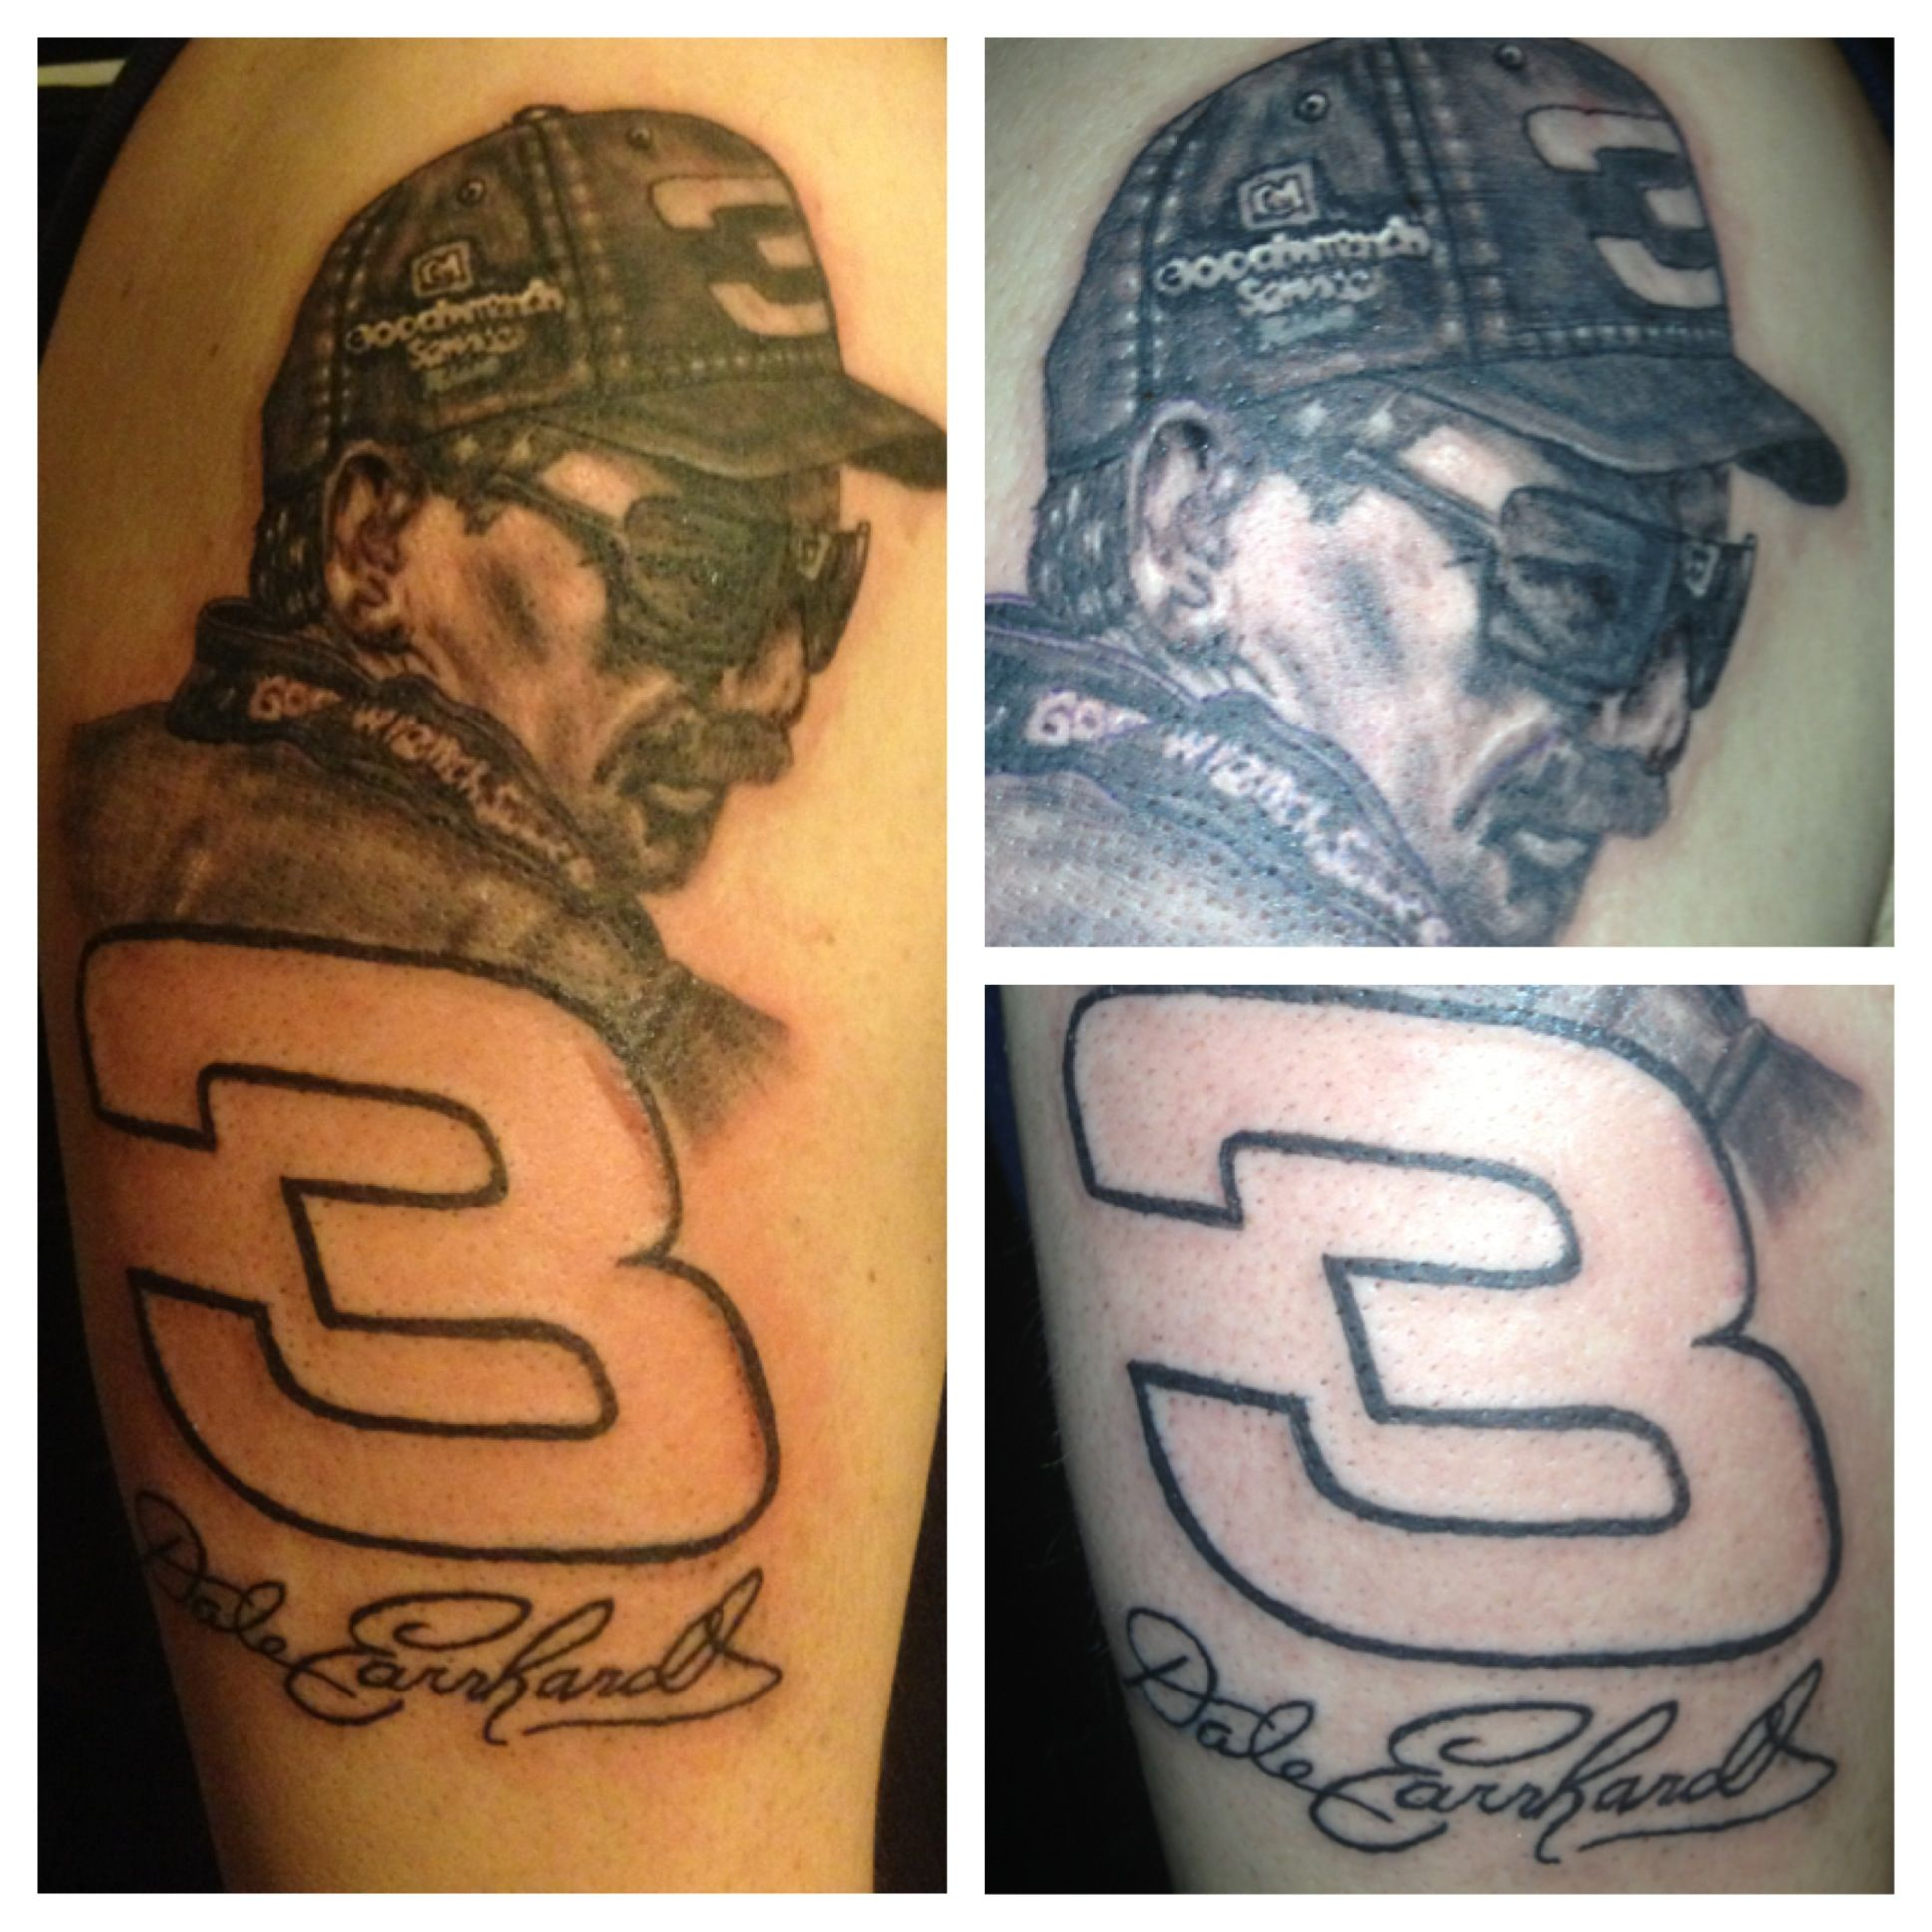 Route 66 tattoo picture at checkoutmyink com - Dale Earnhardt Sr Tattoo